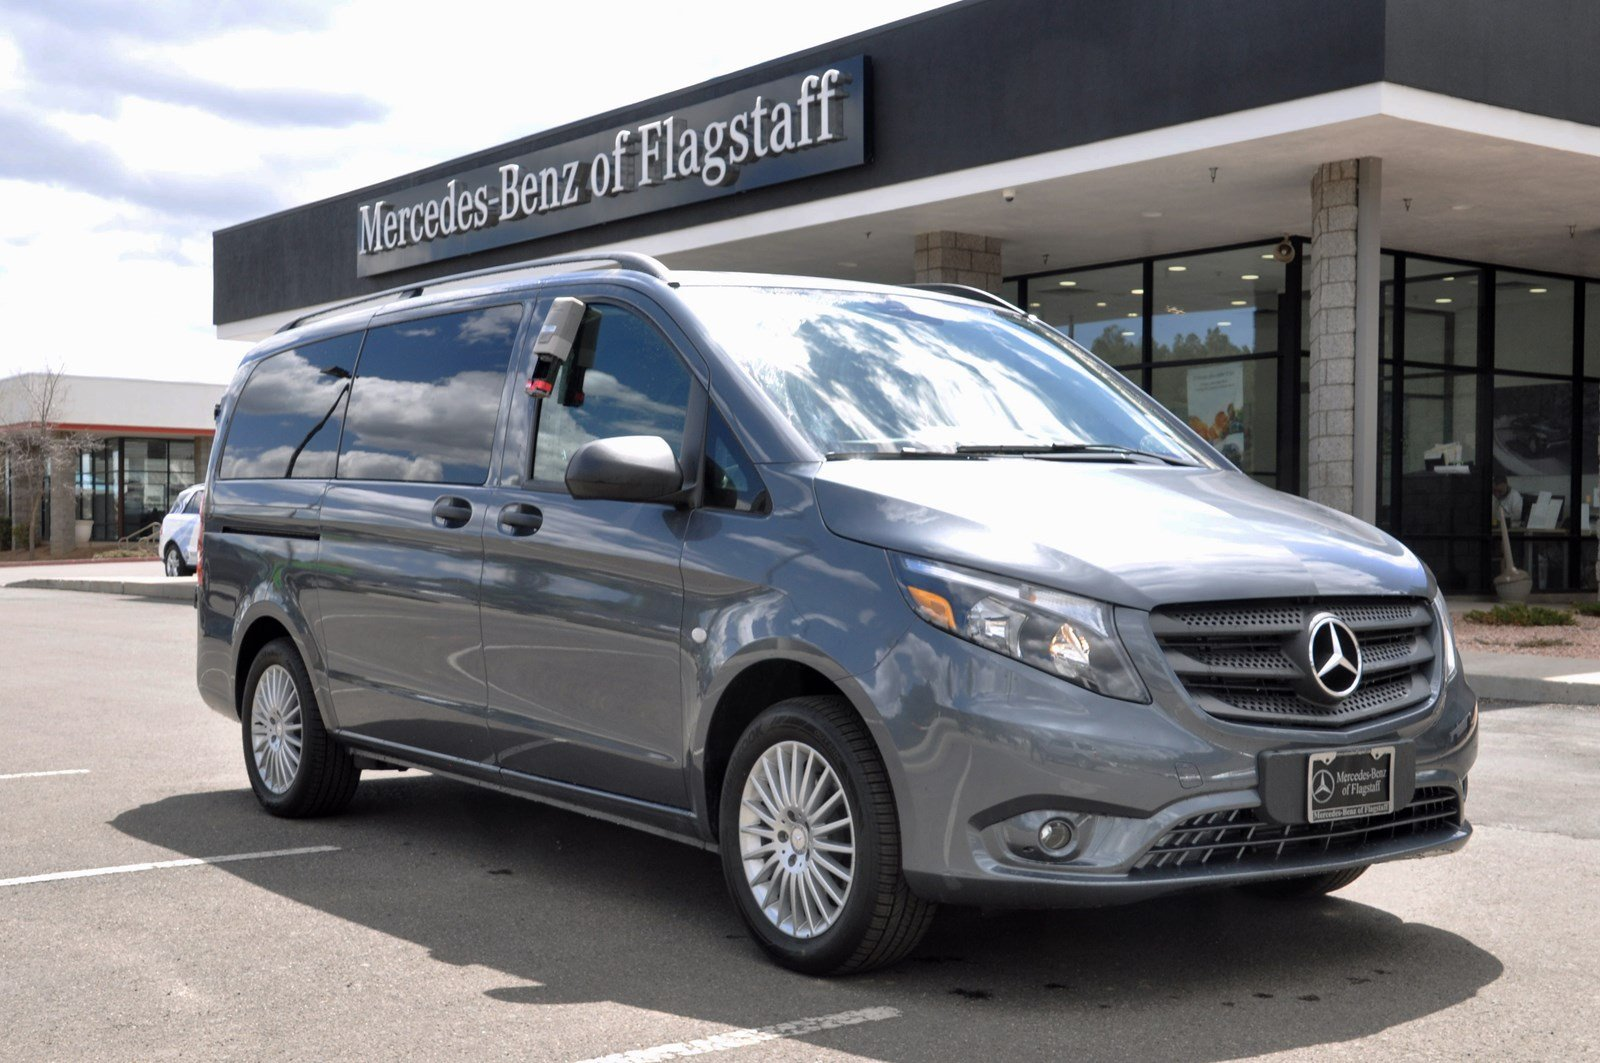 new 2017 mercedes benz metris passenger van passenger van in flagstaff sh242897 mercedes benz. Black Bedroom Furniture Sets. Home Design Ideas